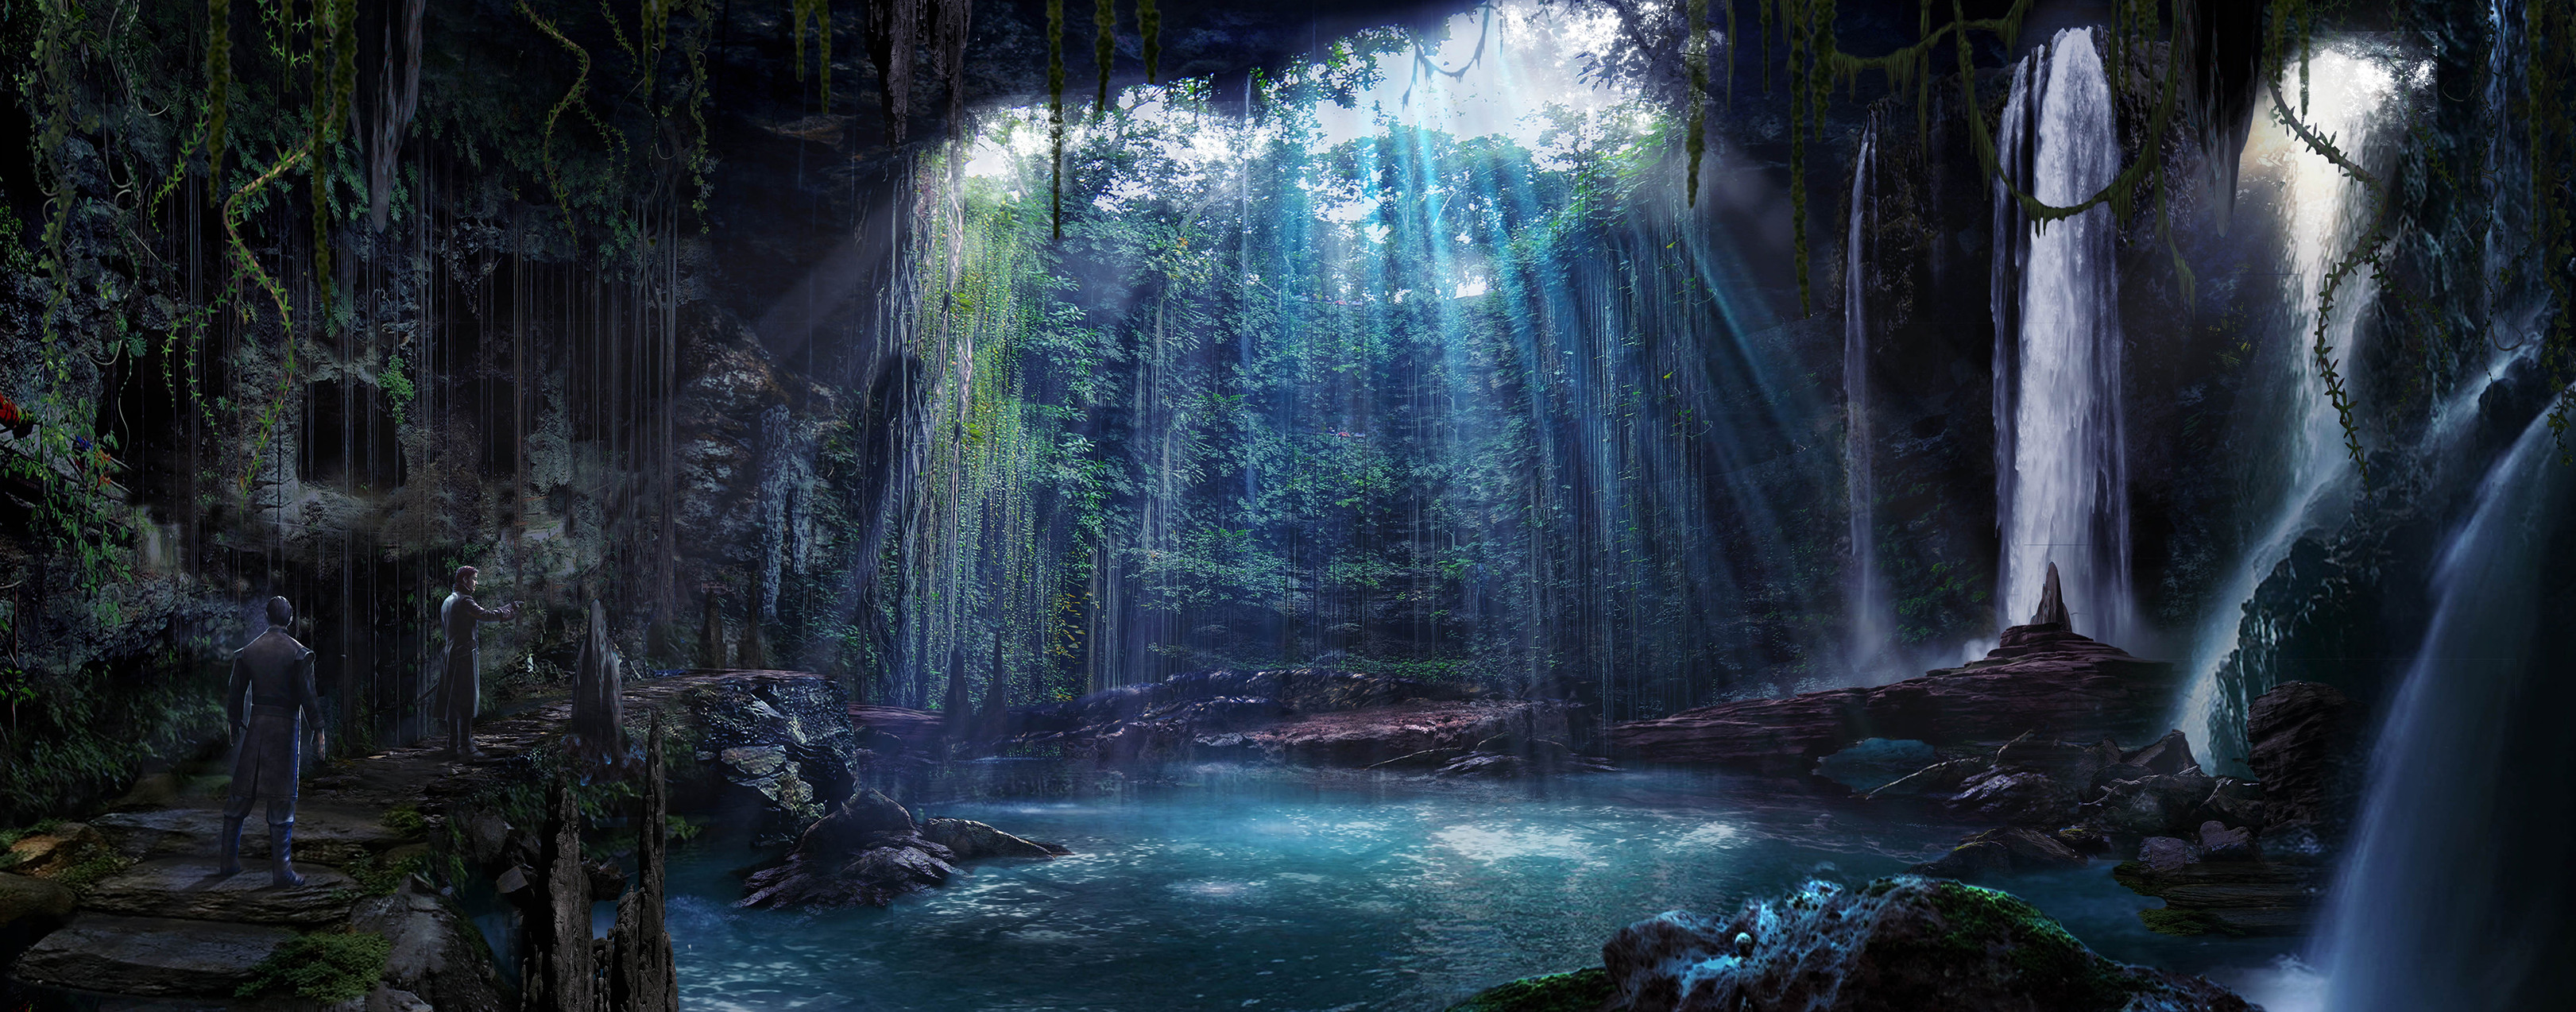 Grotto Concept for  ABC's Once Upon a Time Season 6